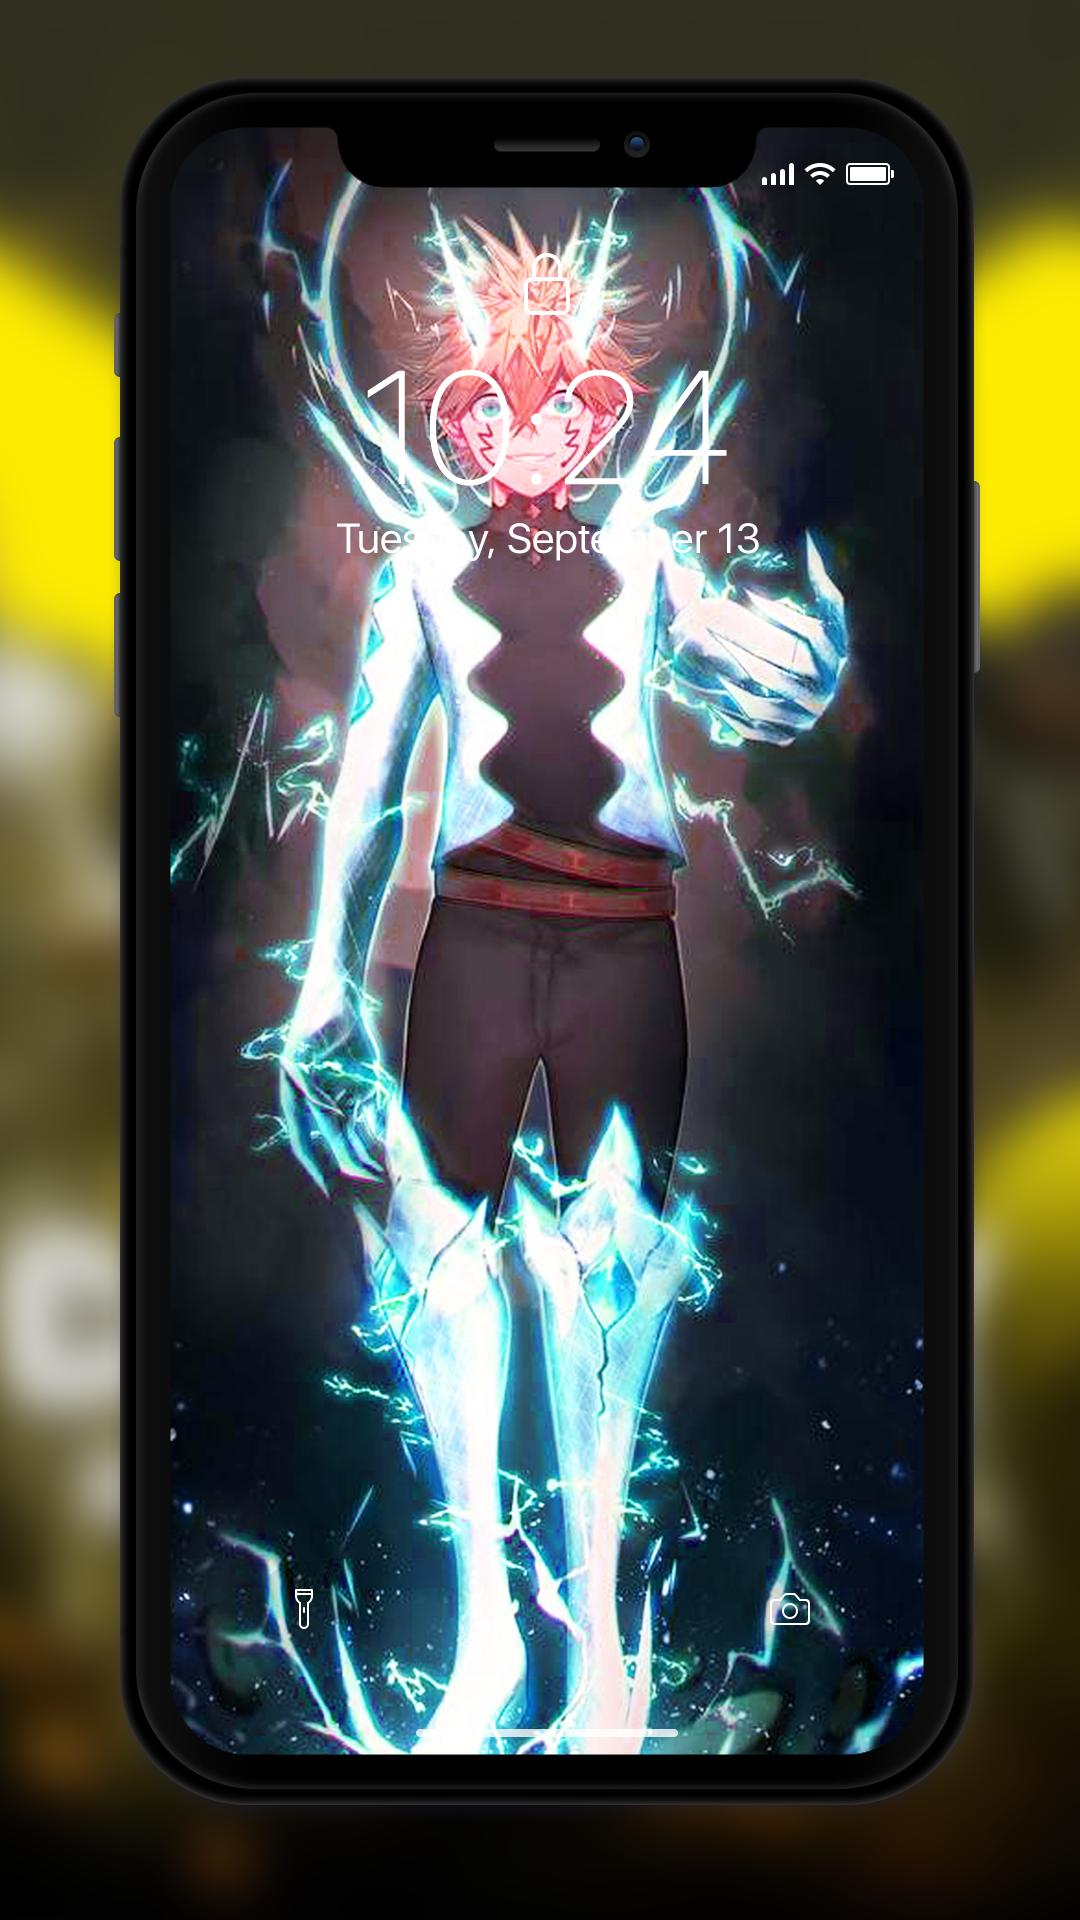 New Black Anime C Hd Wallpapers 2020 For Android Apk Download